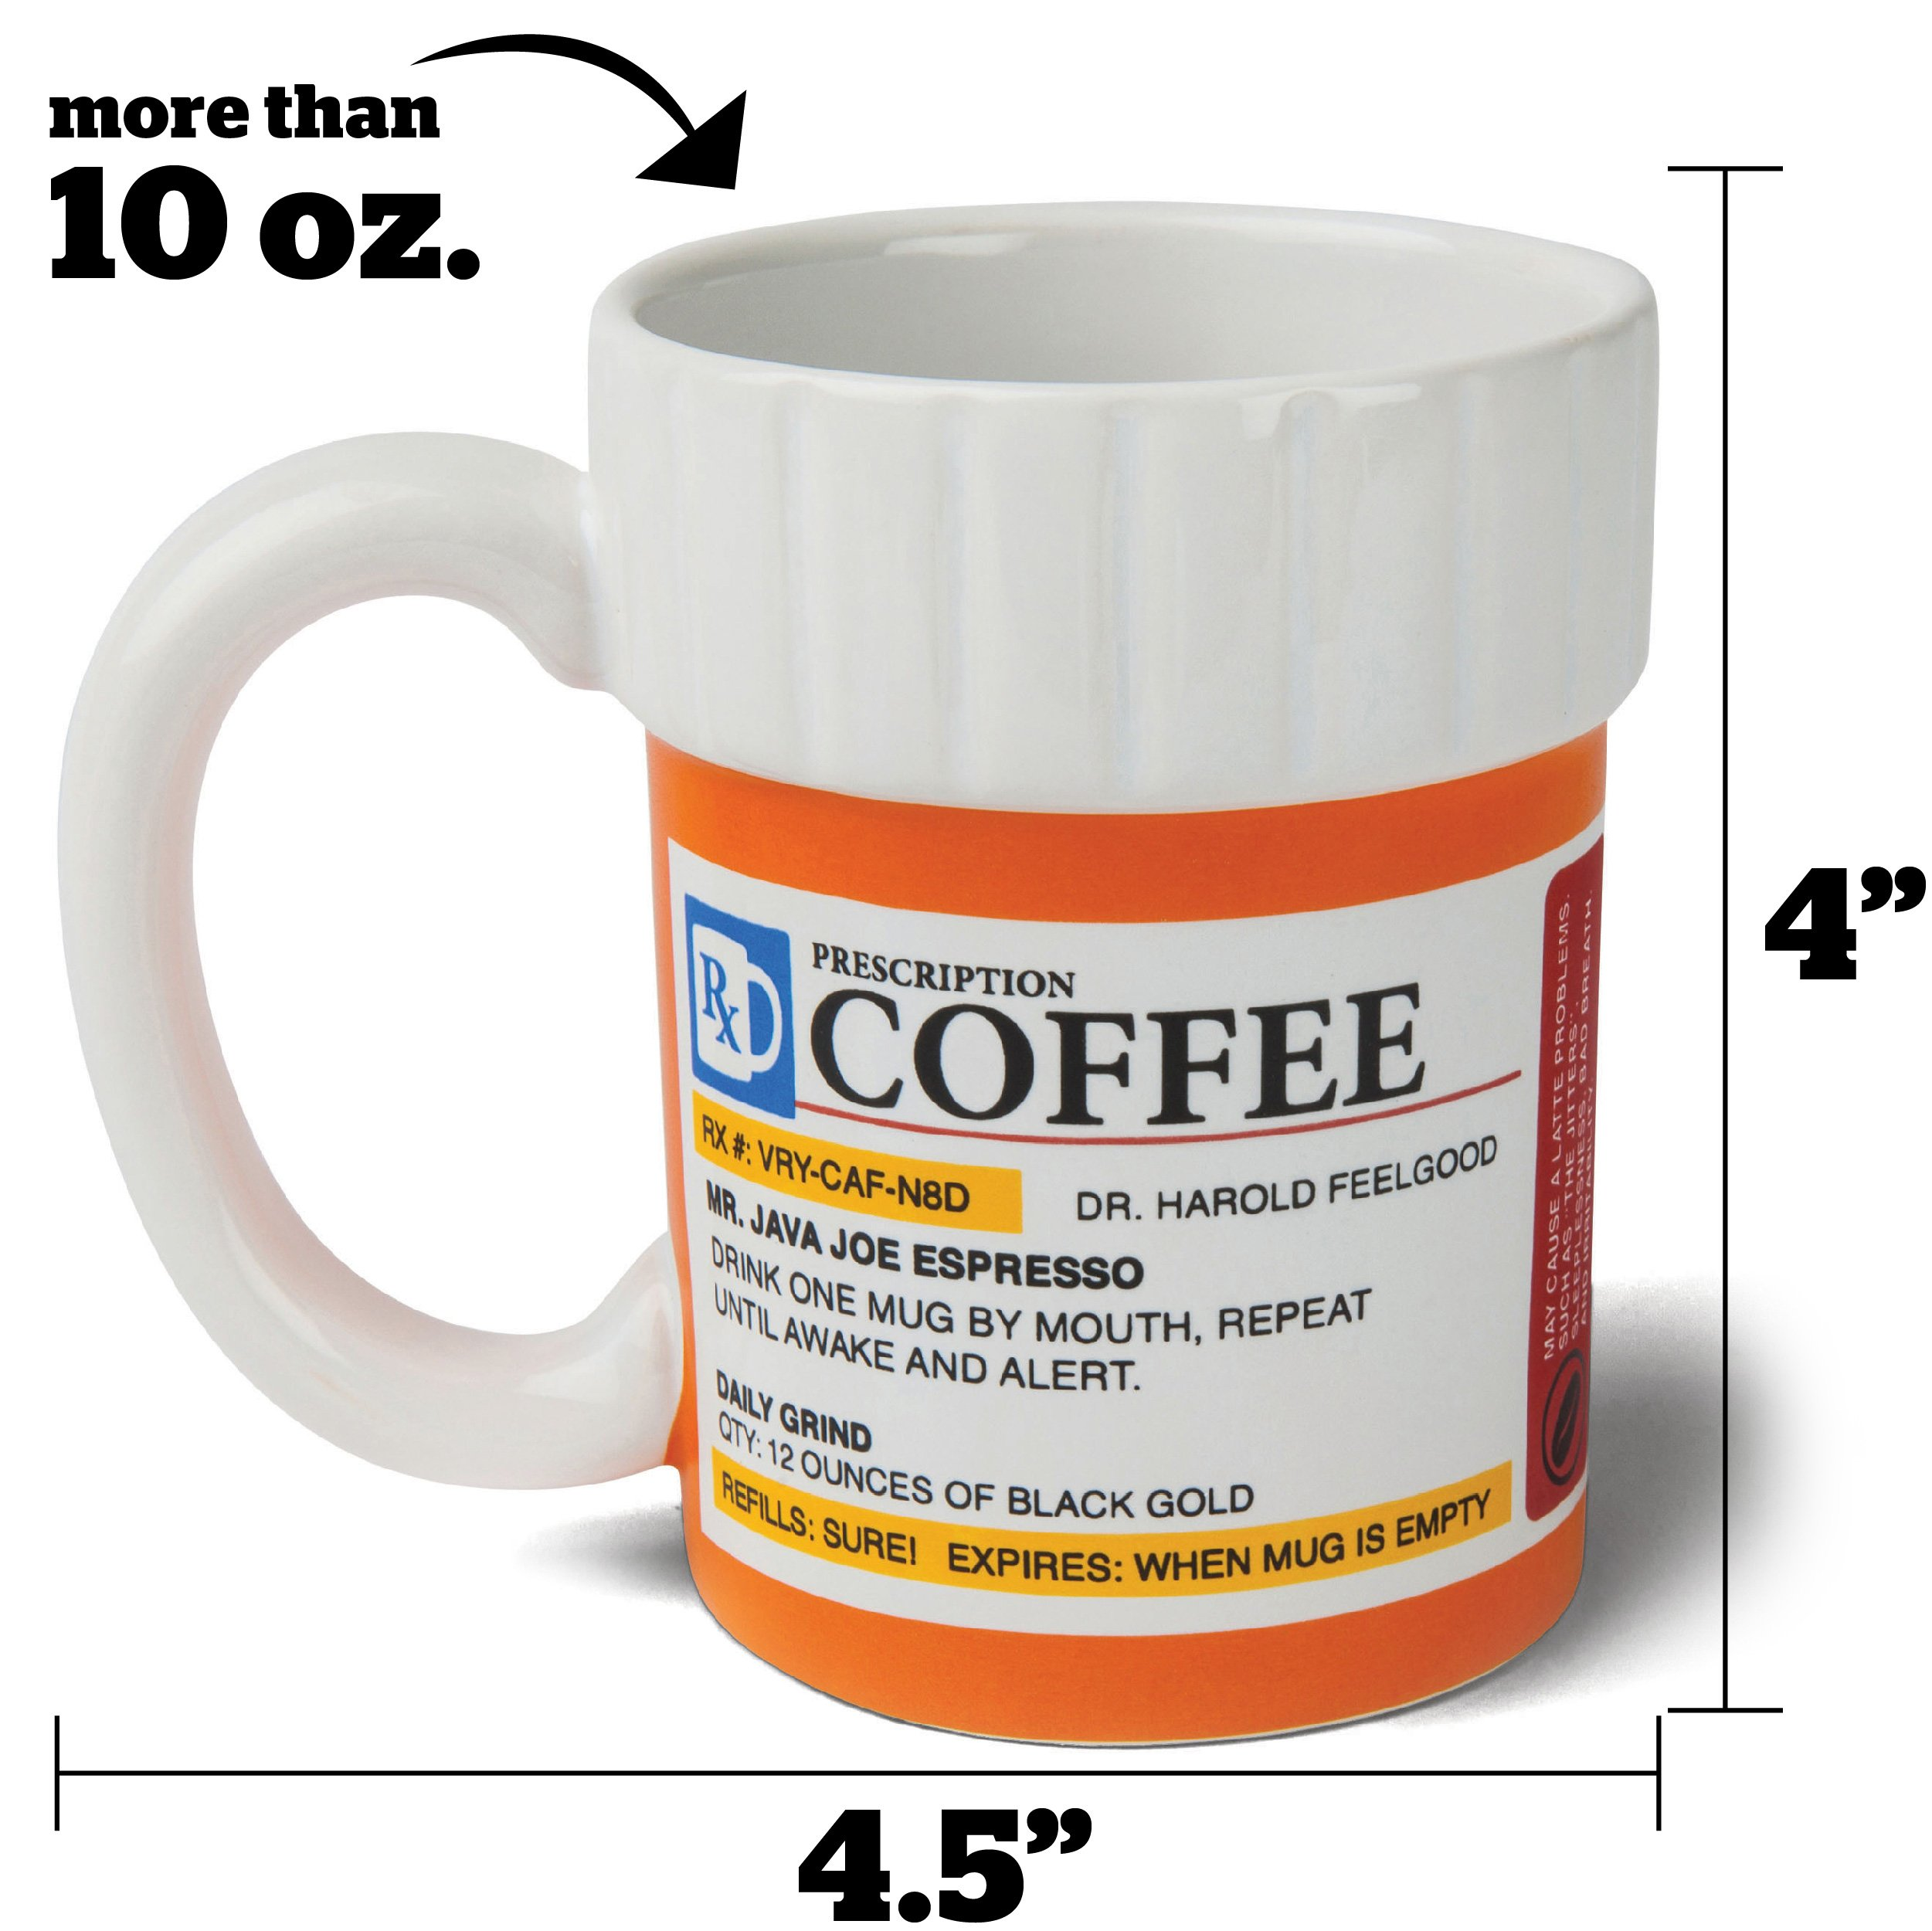 BigMouth Inc. The Prescription Coffee Mug - Hilarious 12 oz Ceramic Coffee Cup in the Shape of a Pill Bottle - Perfect for Home or Office, Makes a Great Gift by BigMouth Inc